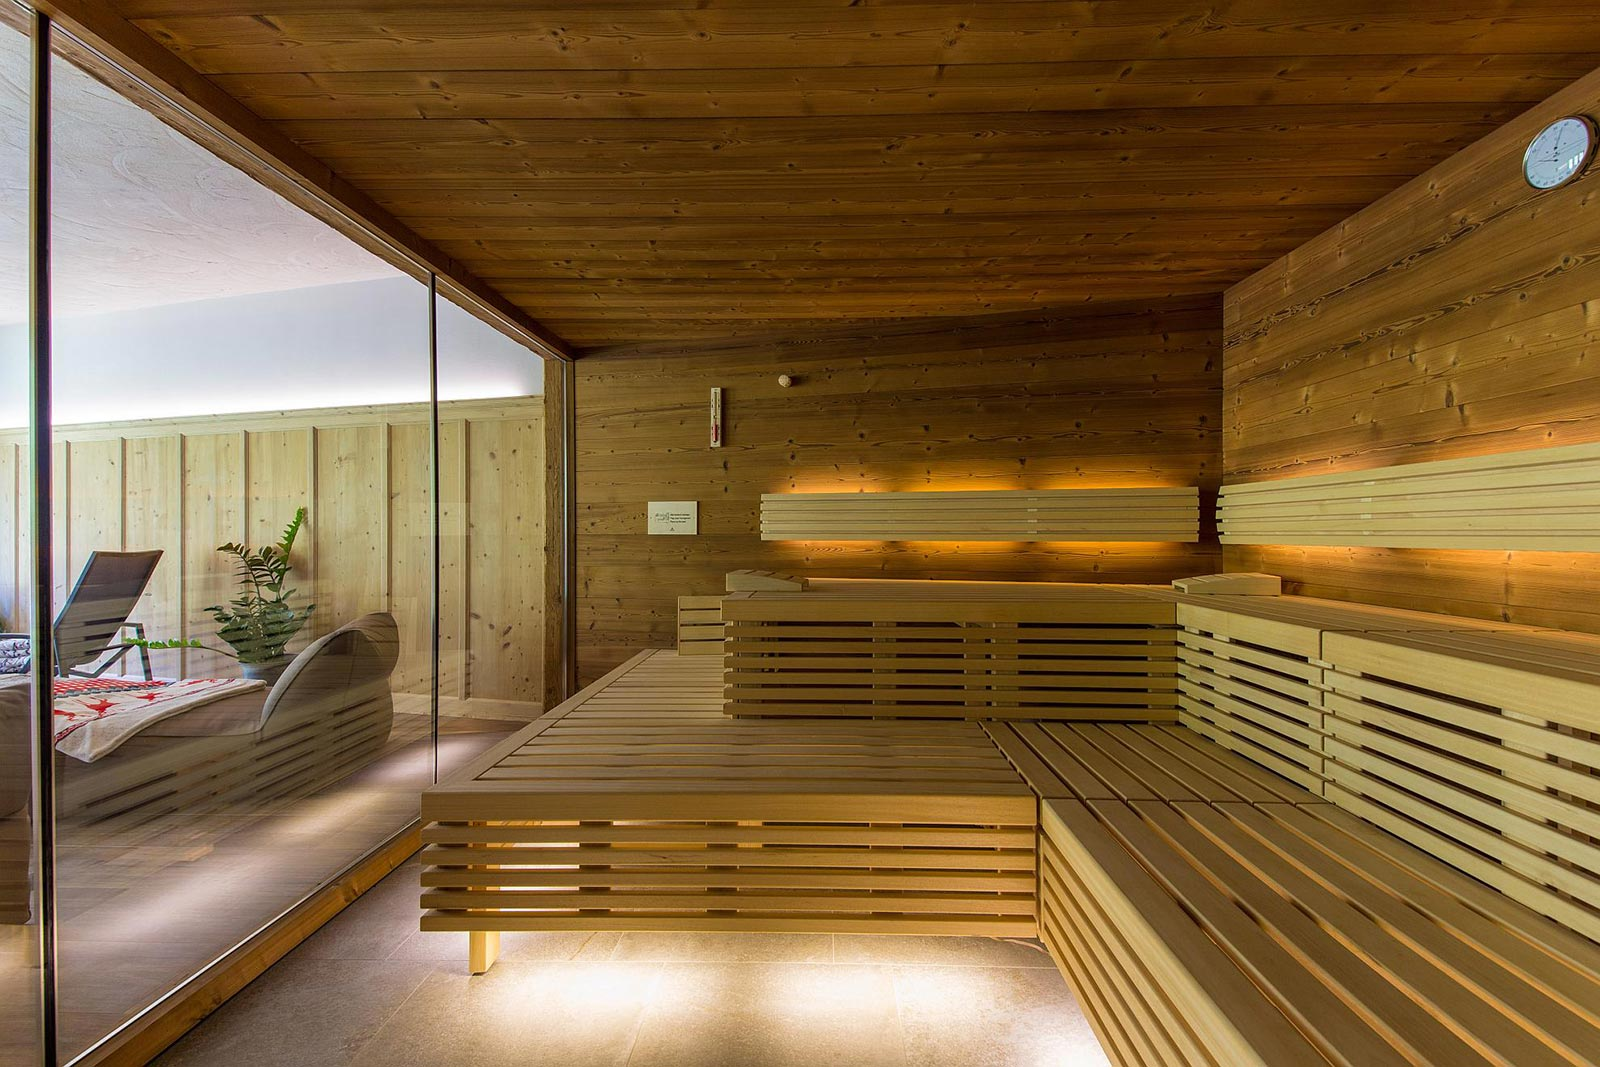 Detail of the sauna at the Residence in Val Passiria